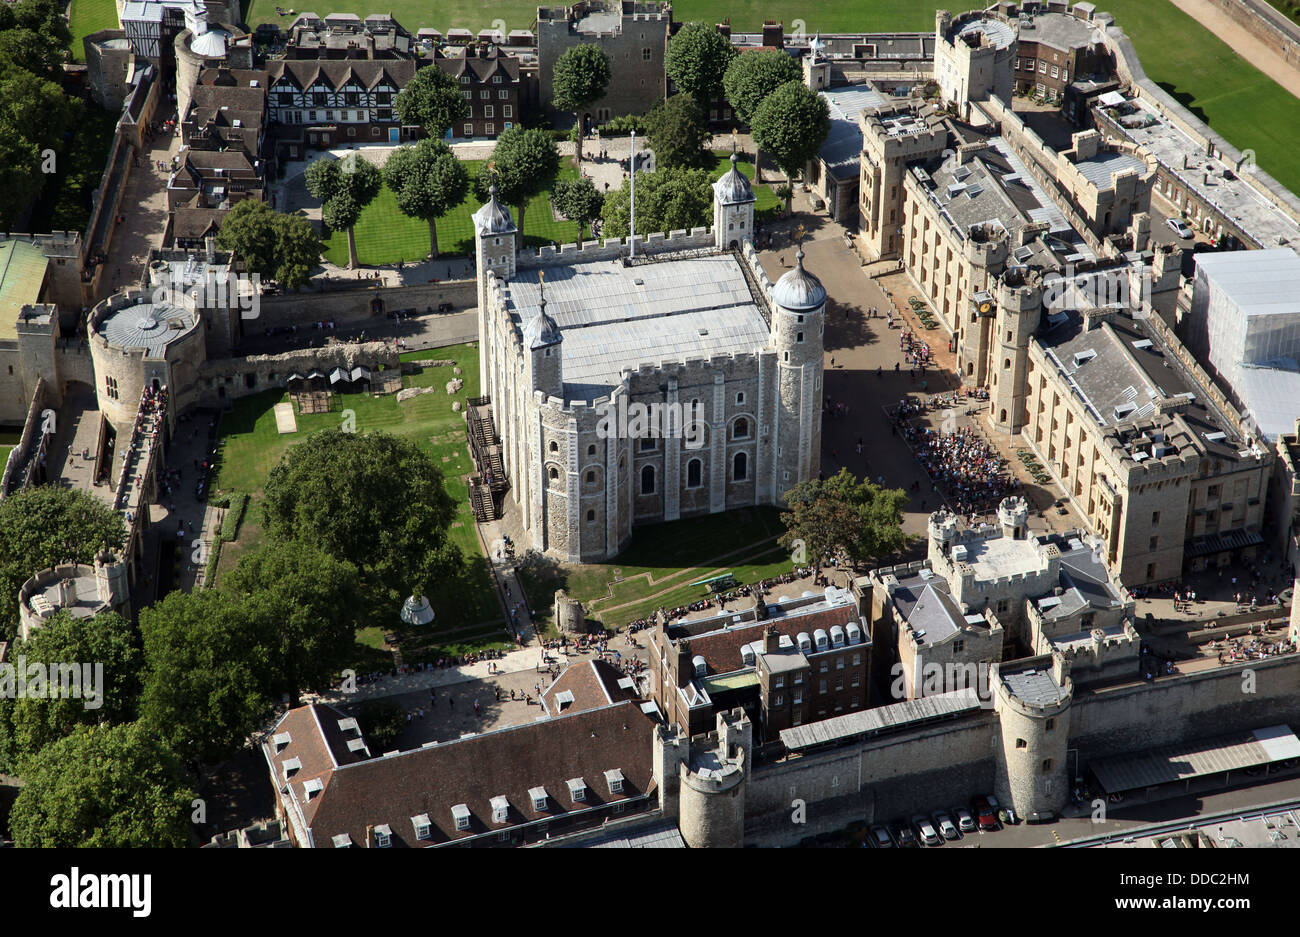 an aerial view of the Tower of London where the Royal crown jewels are kept - Stock Image